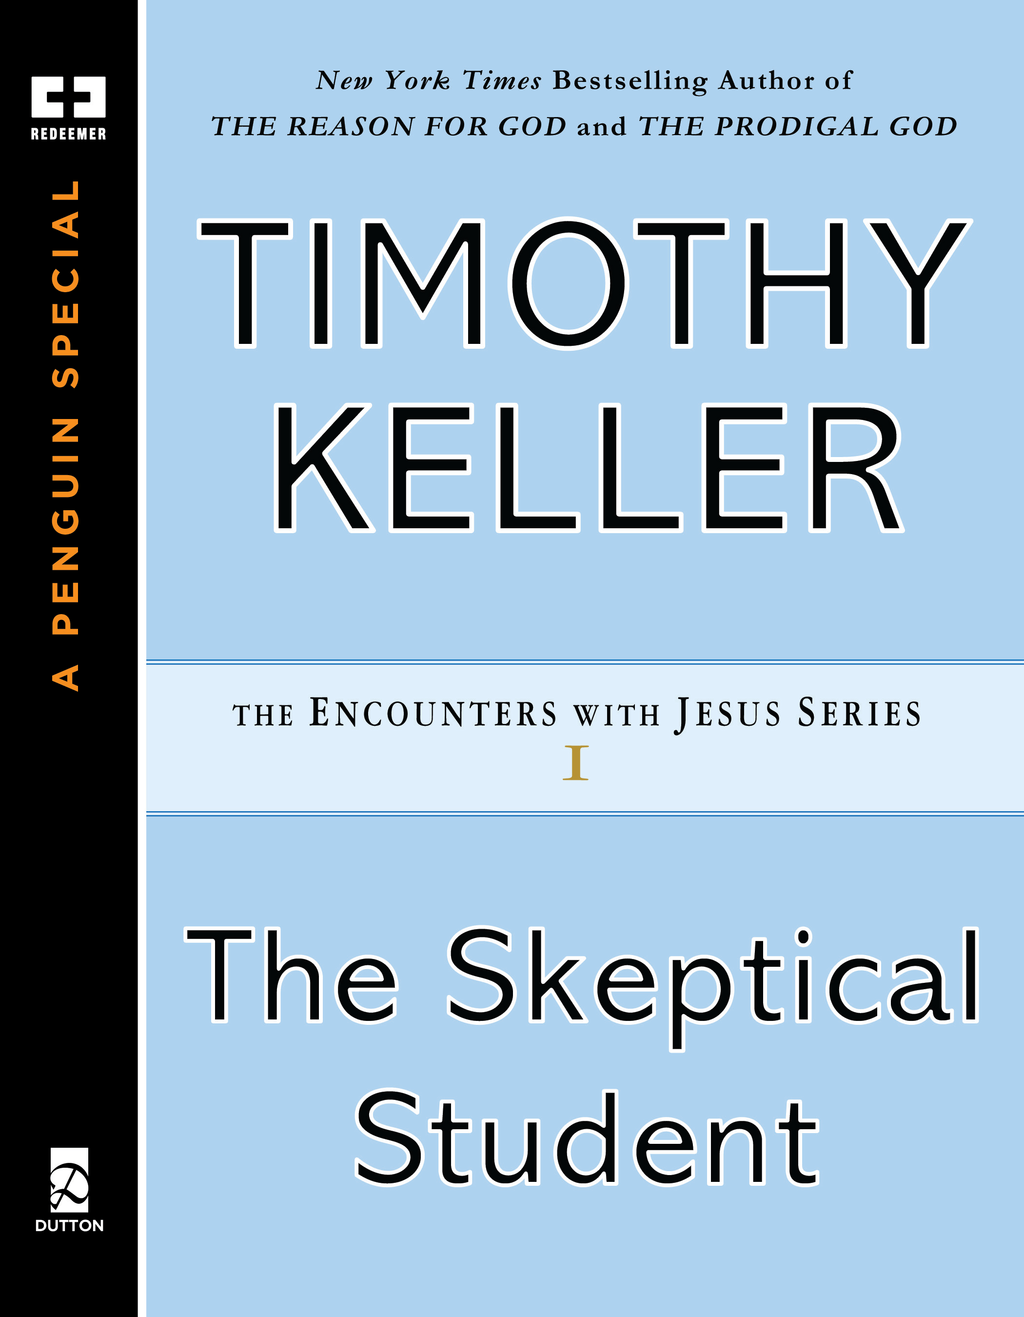 The Skeptical Student By: Timothy Keller